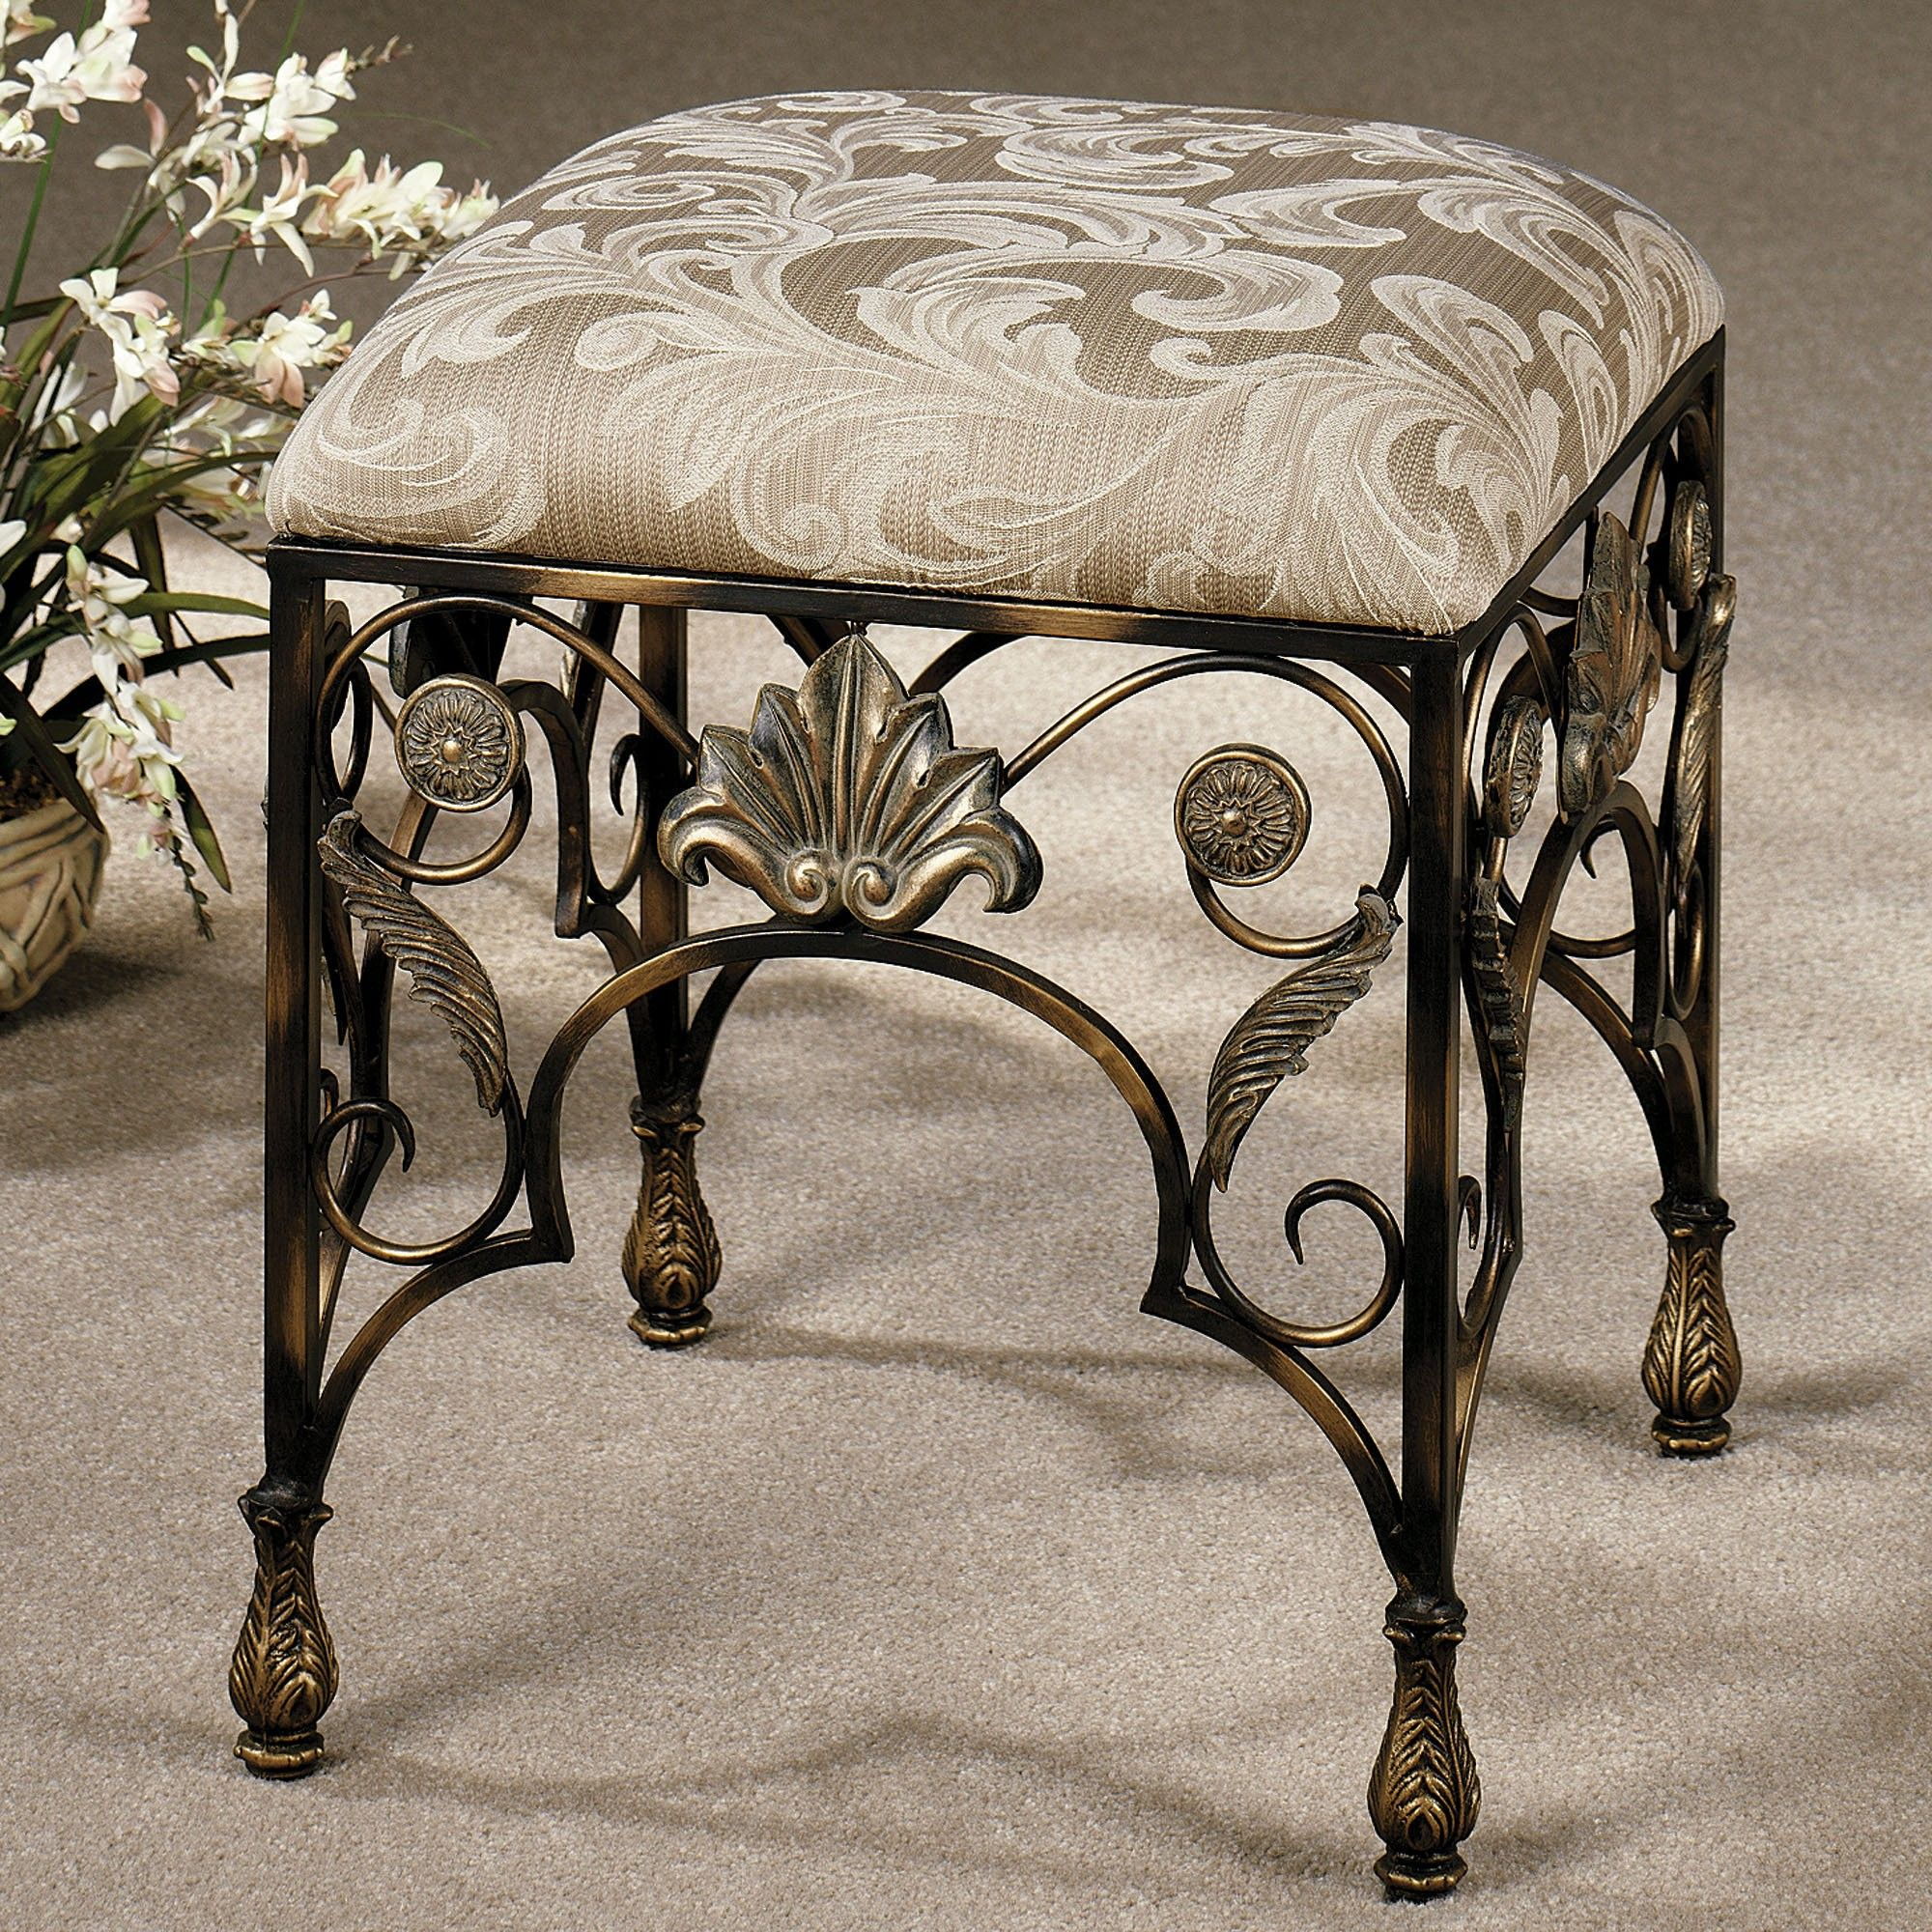 Bathroom Furniture Elegant Backless Vanity Chair With Ornate